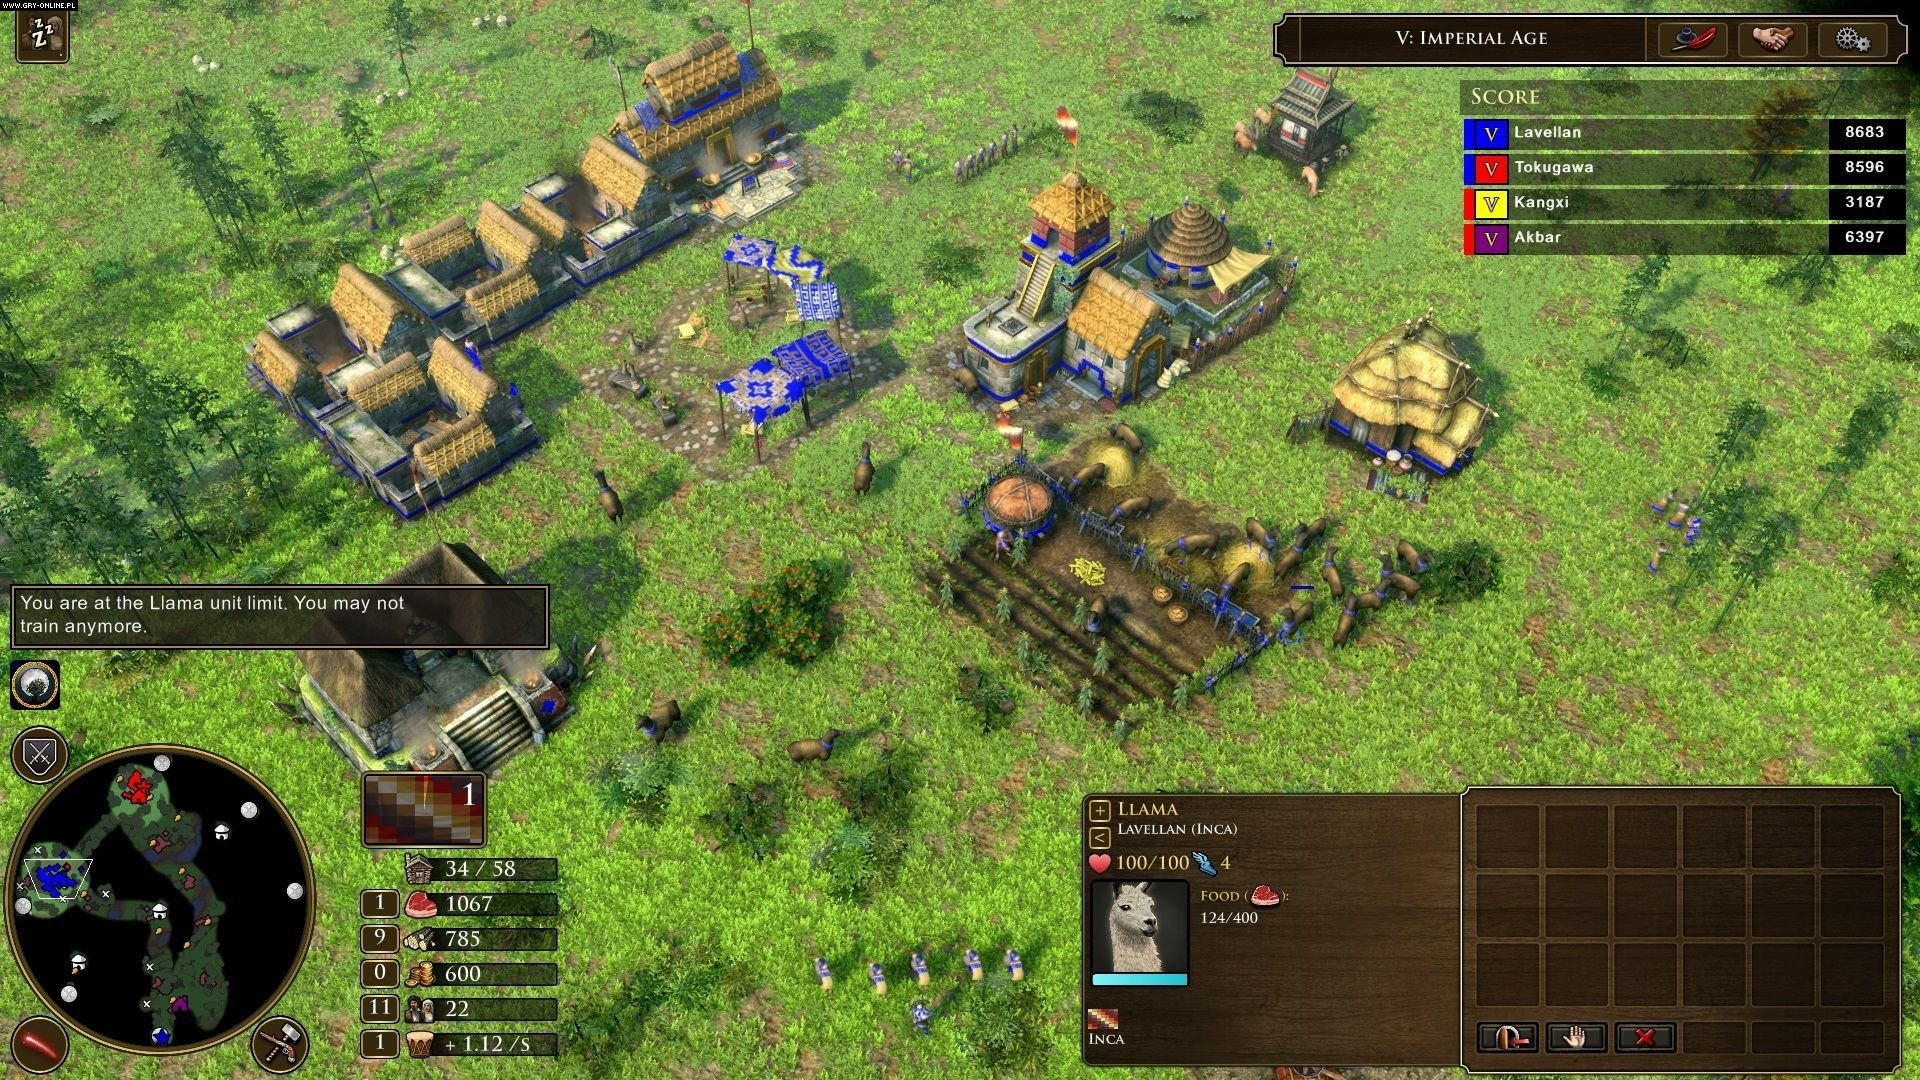 Screenshot for the game Age of Empires III: Definitive Edition [Steam-Rip] (2005-2020) download torrent License